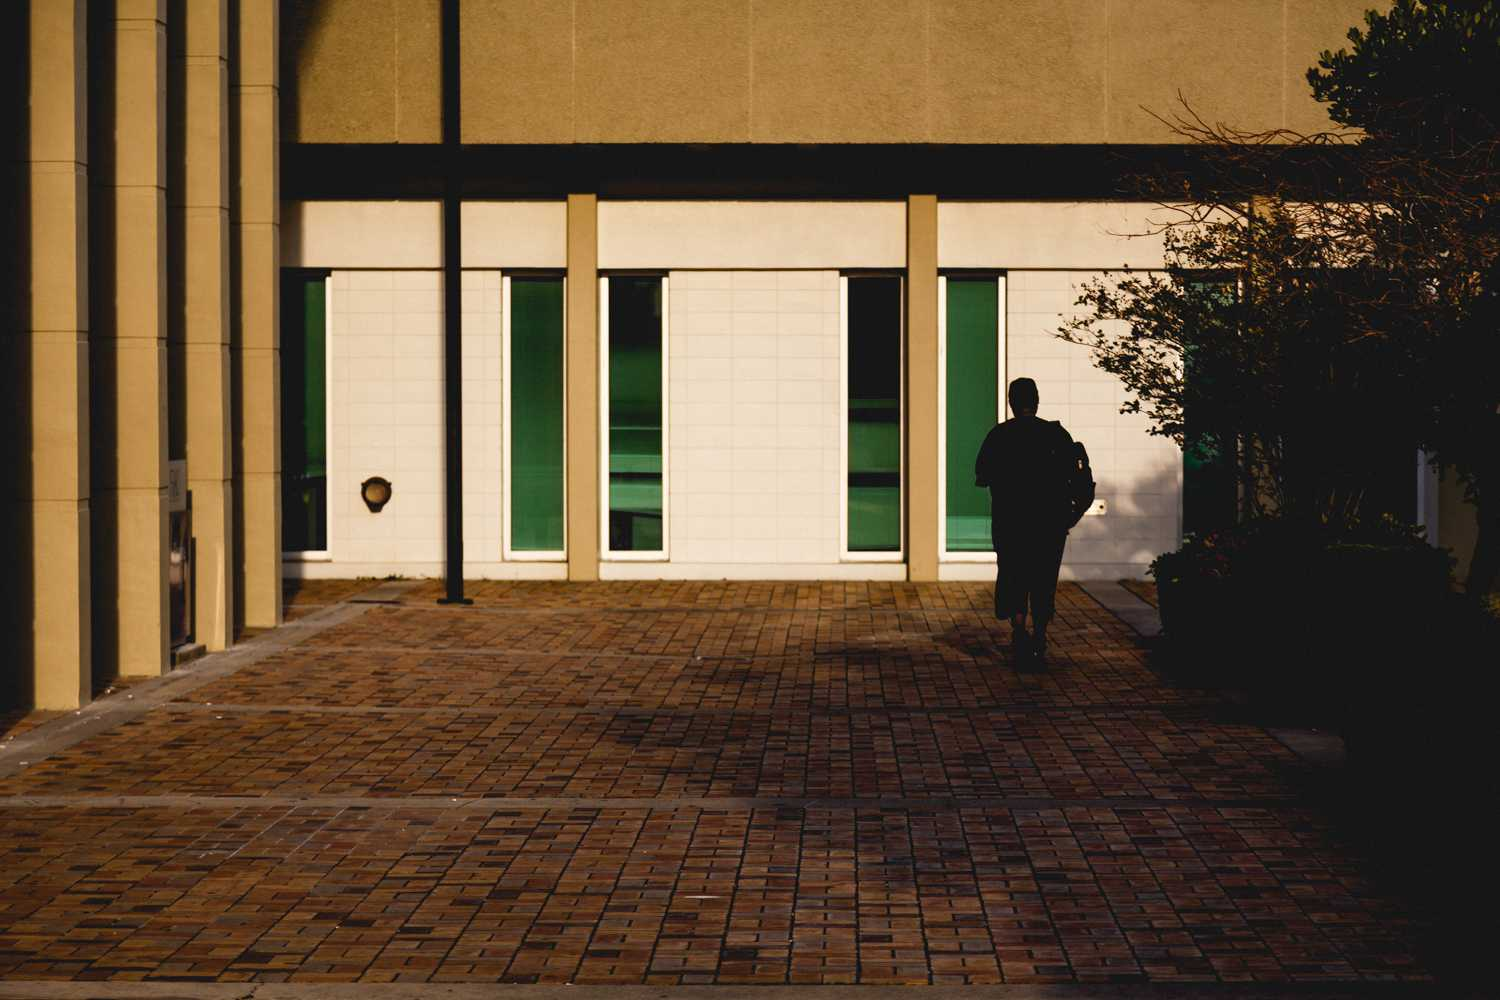 Silhouette of a student on campus.